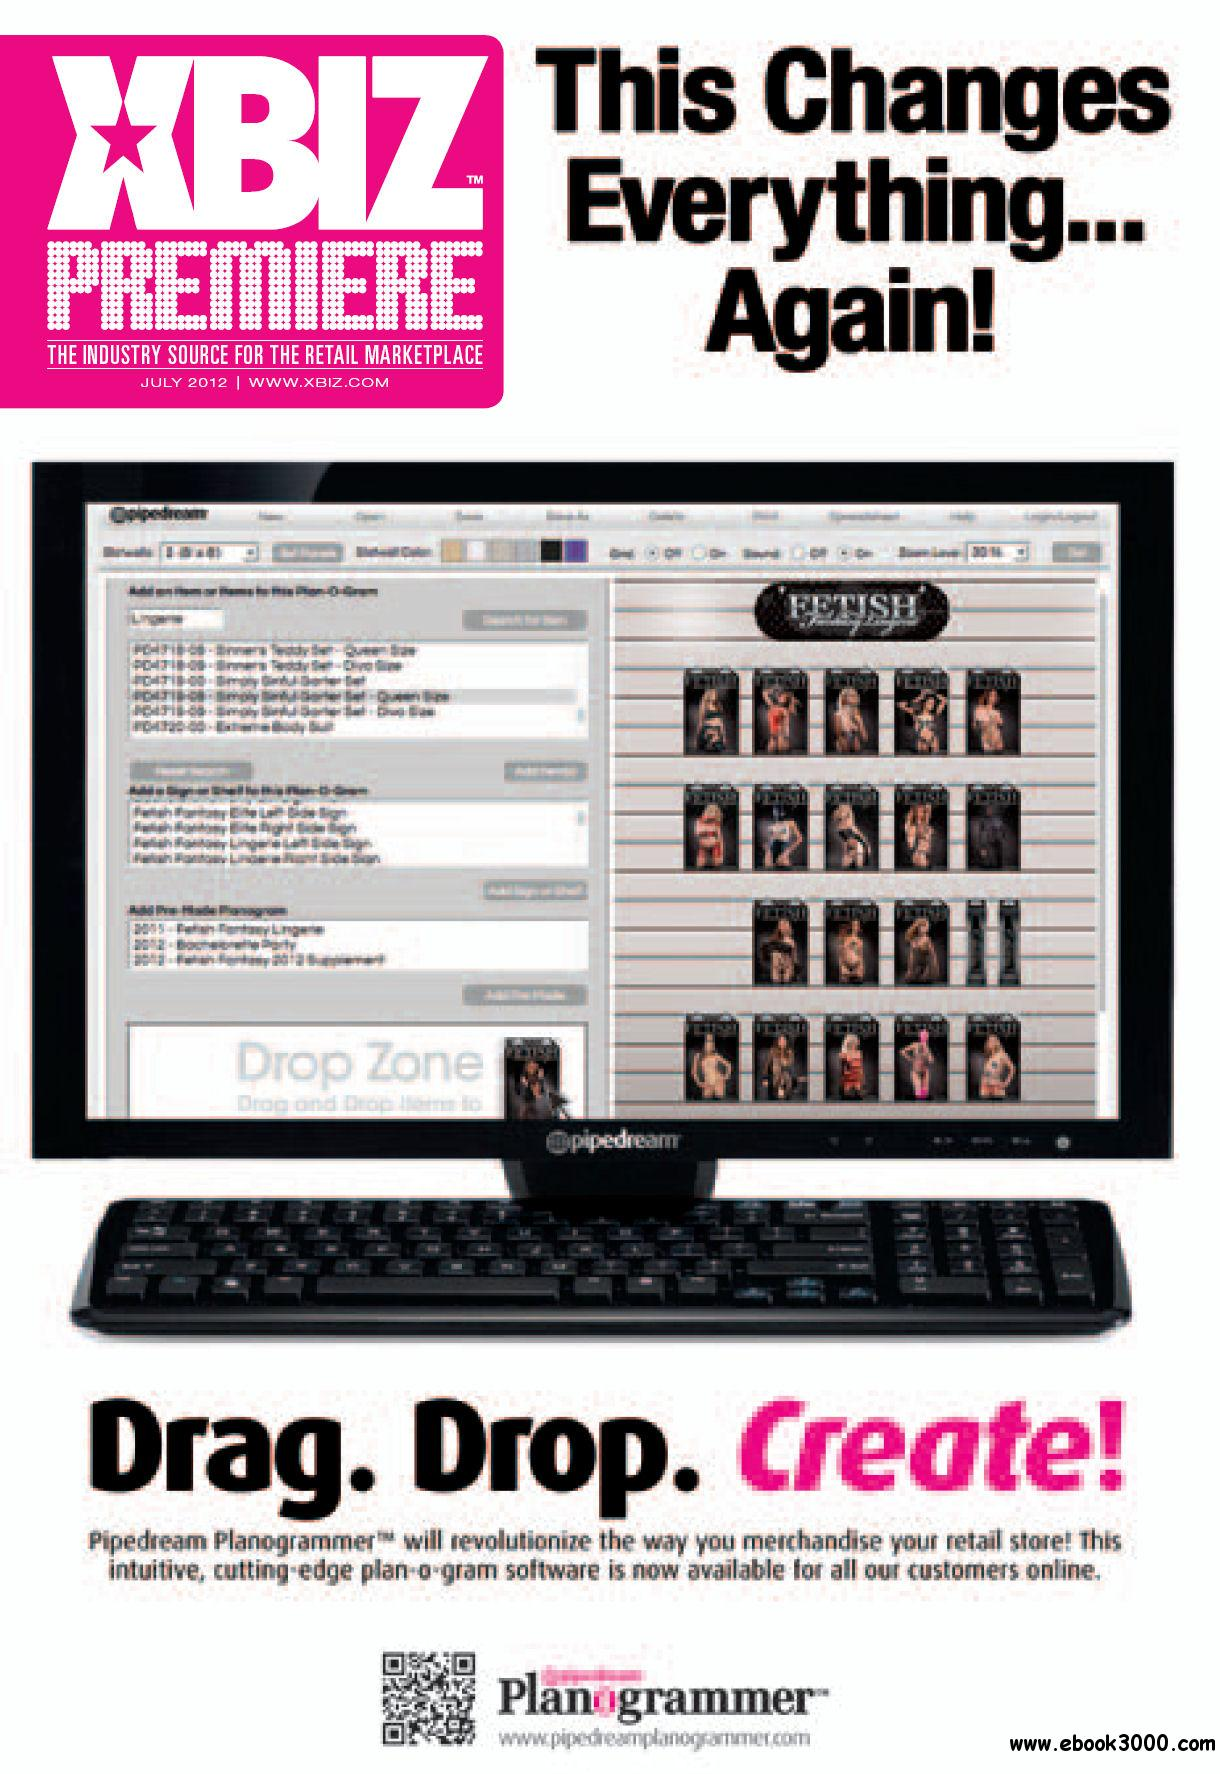 XBIZ Premiere - July 2012 free download